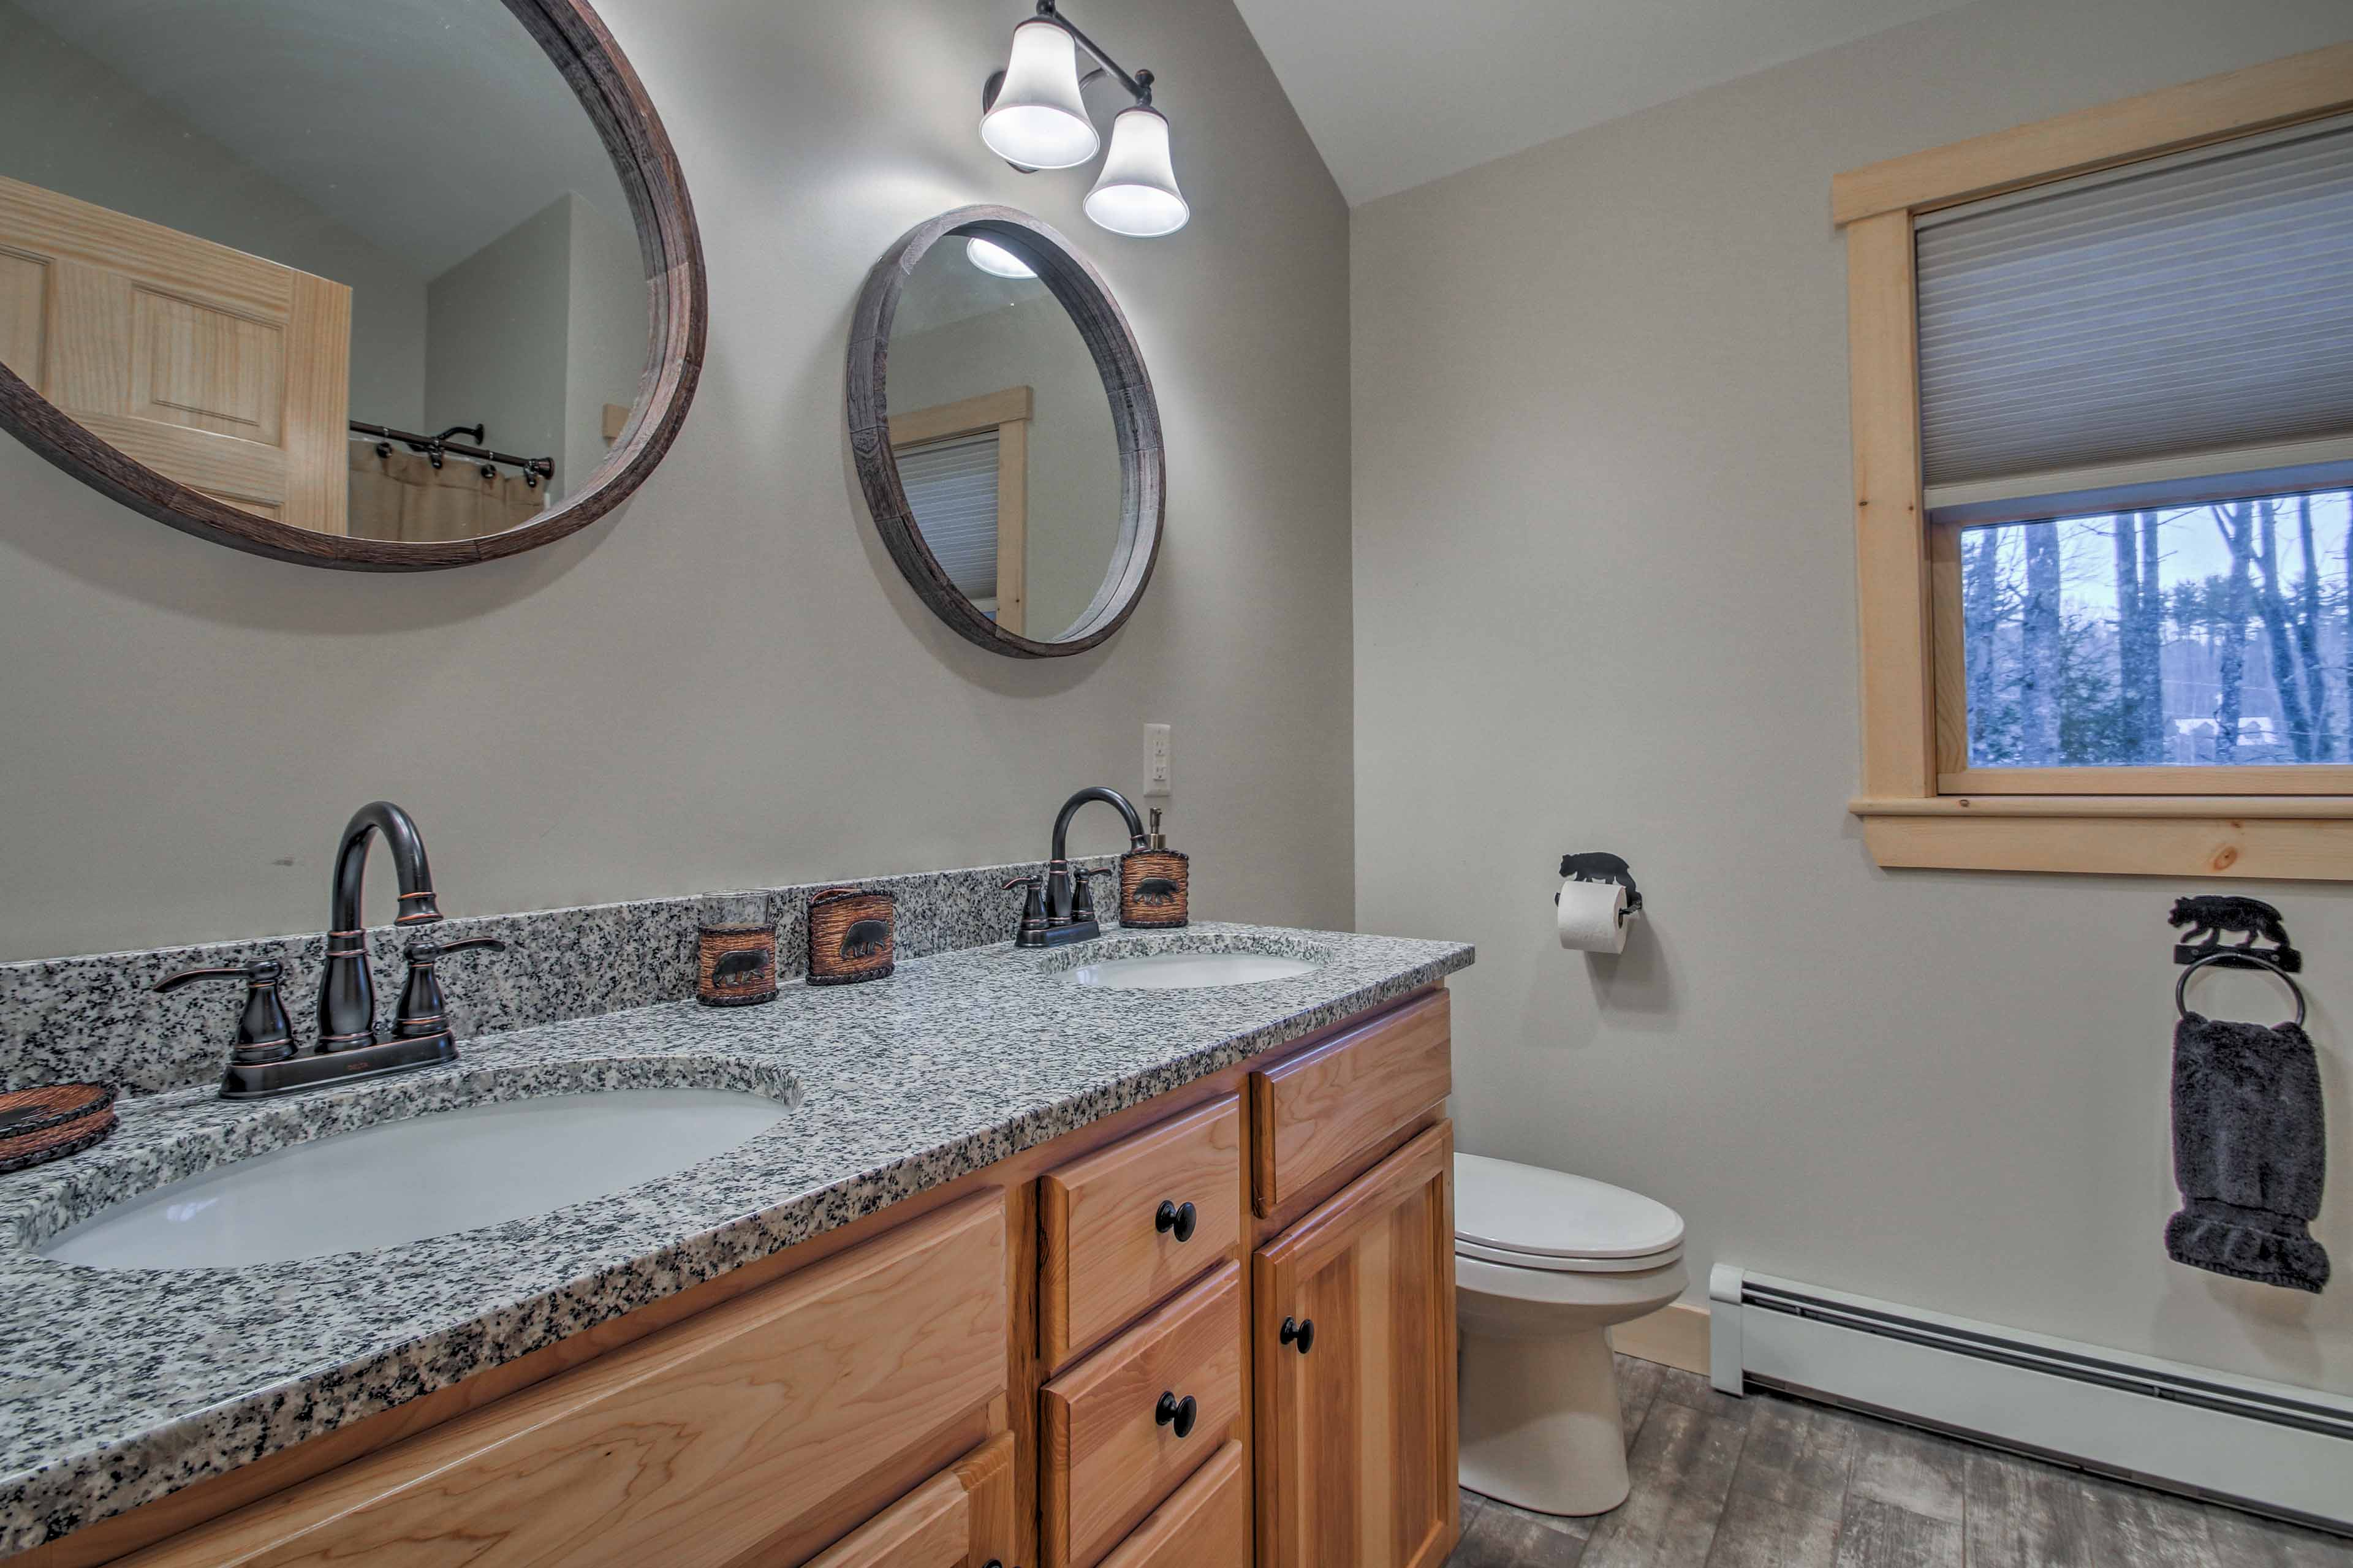 Prep for the day with ease at this double-sink vanity.